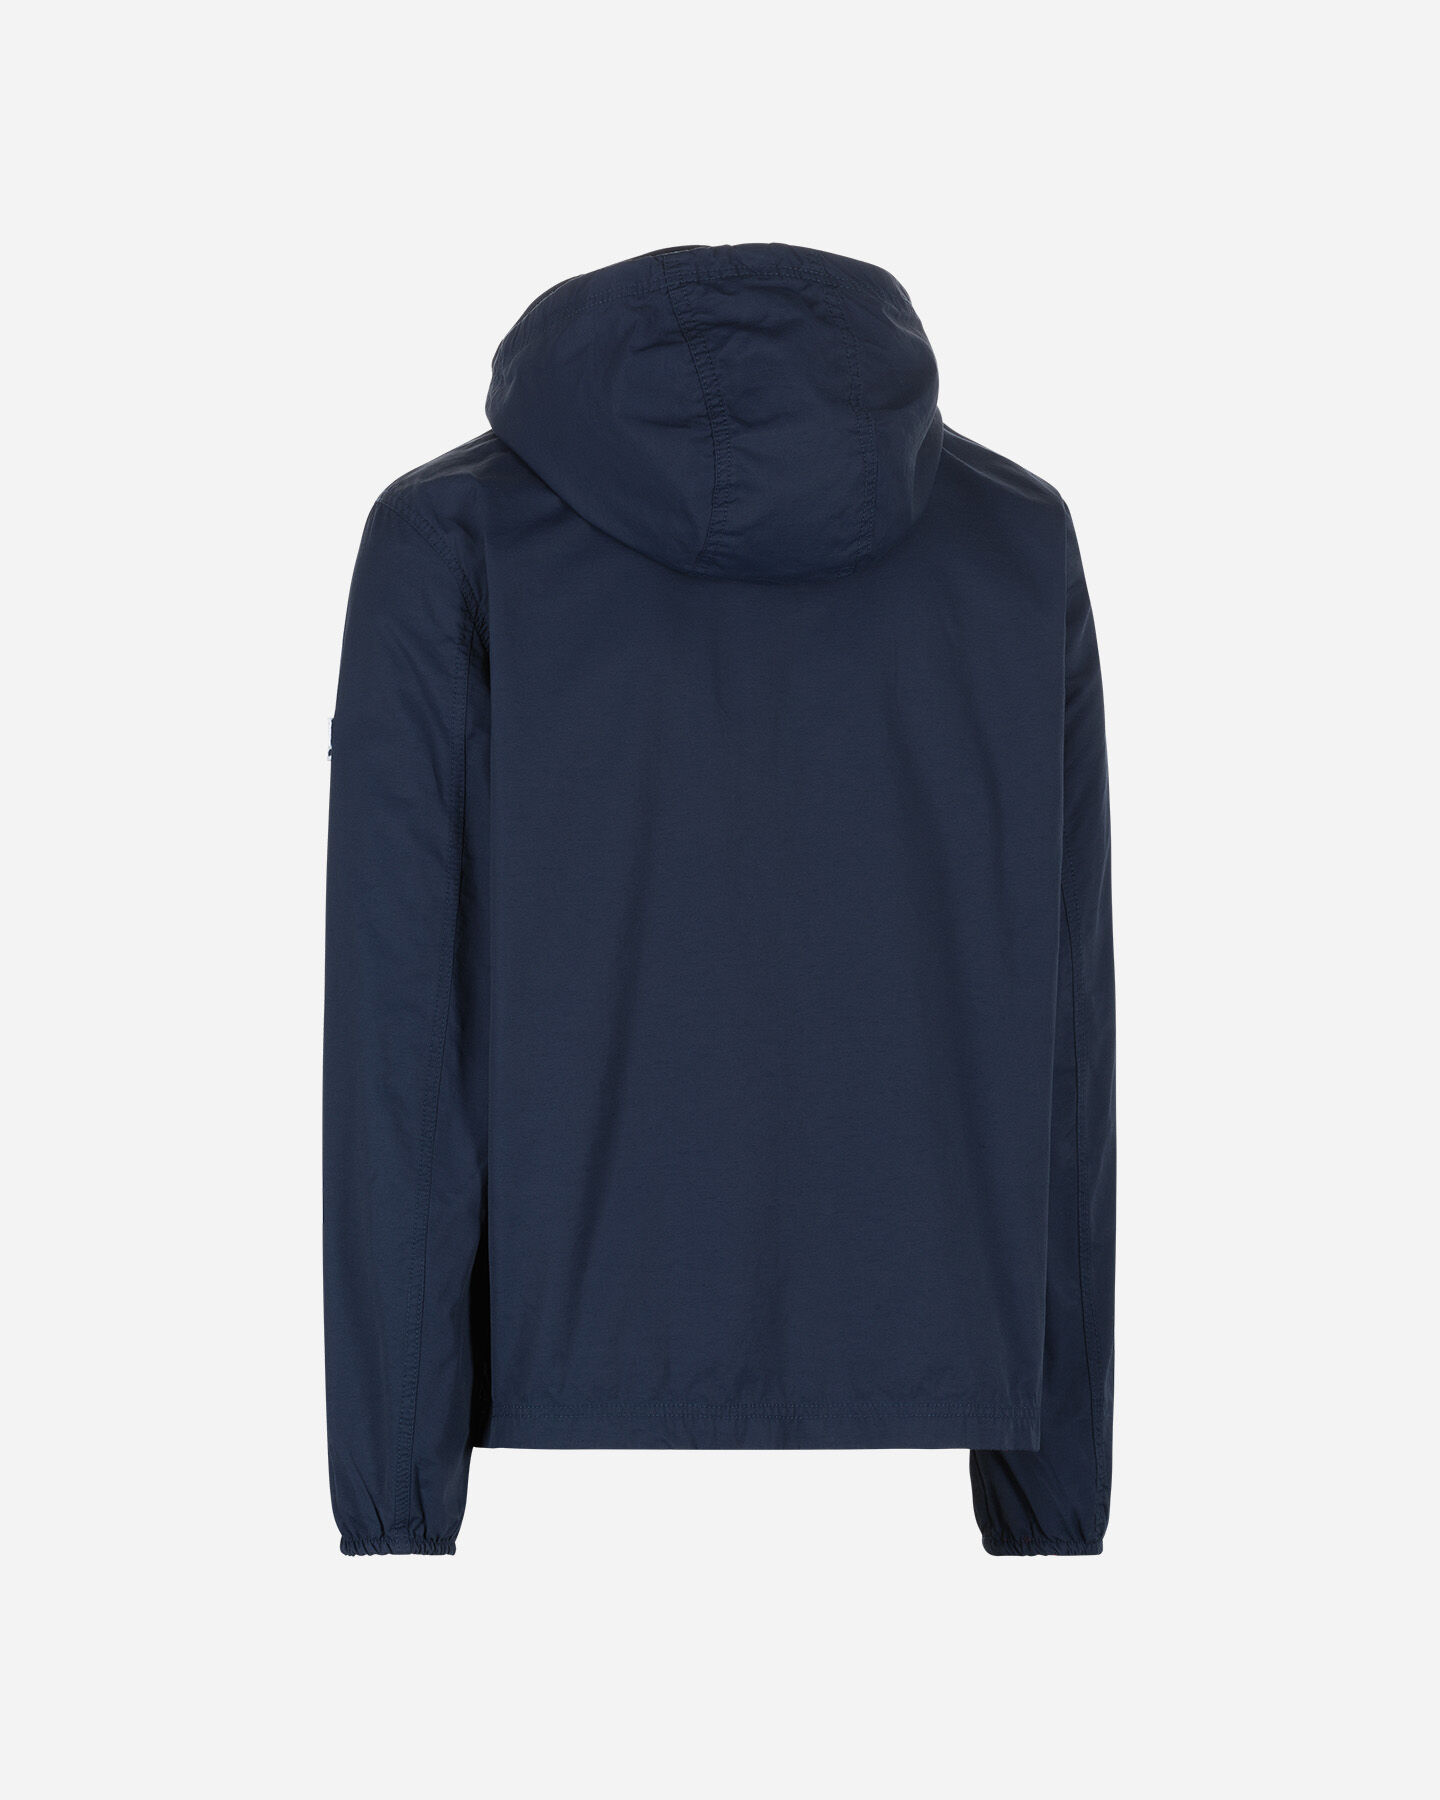 Giacca TOMMY HILFIGER ESSENTIAL M S4073529 scatto 1